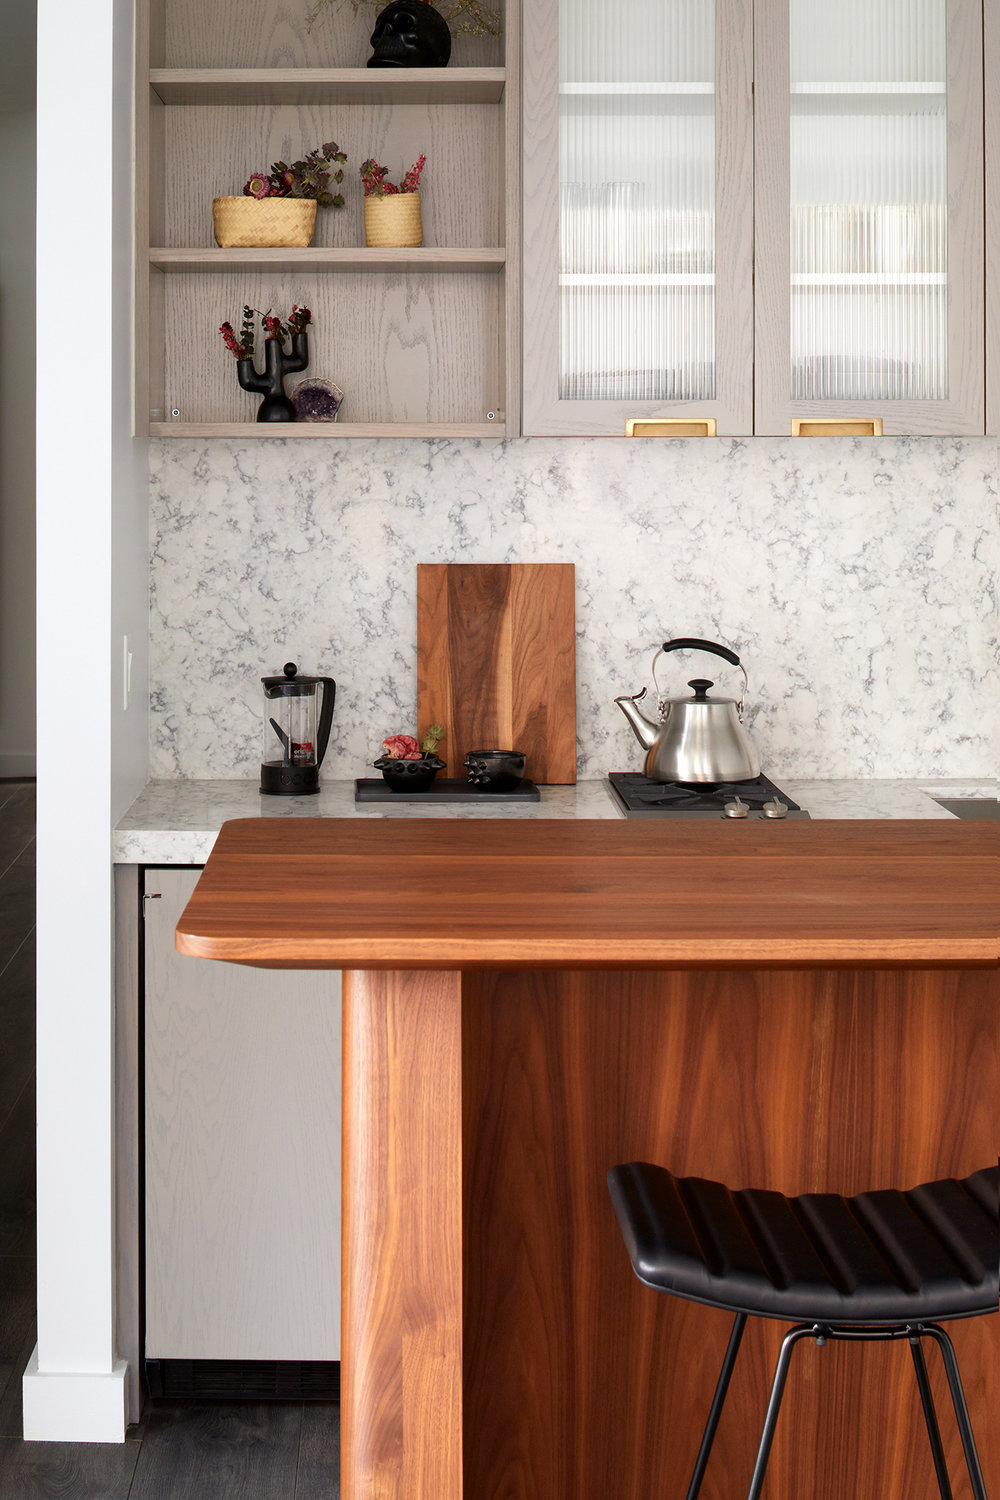 36 Hotel - Kitchen detail .jpg